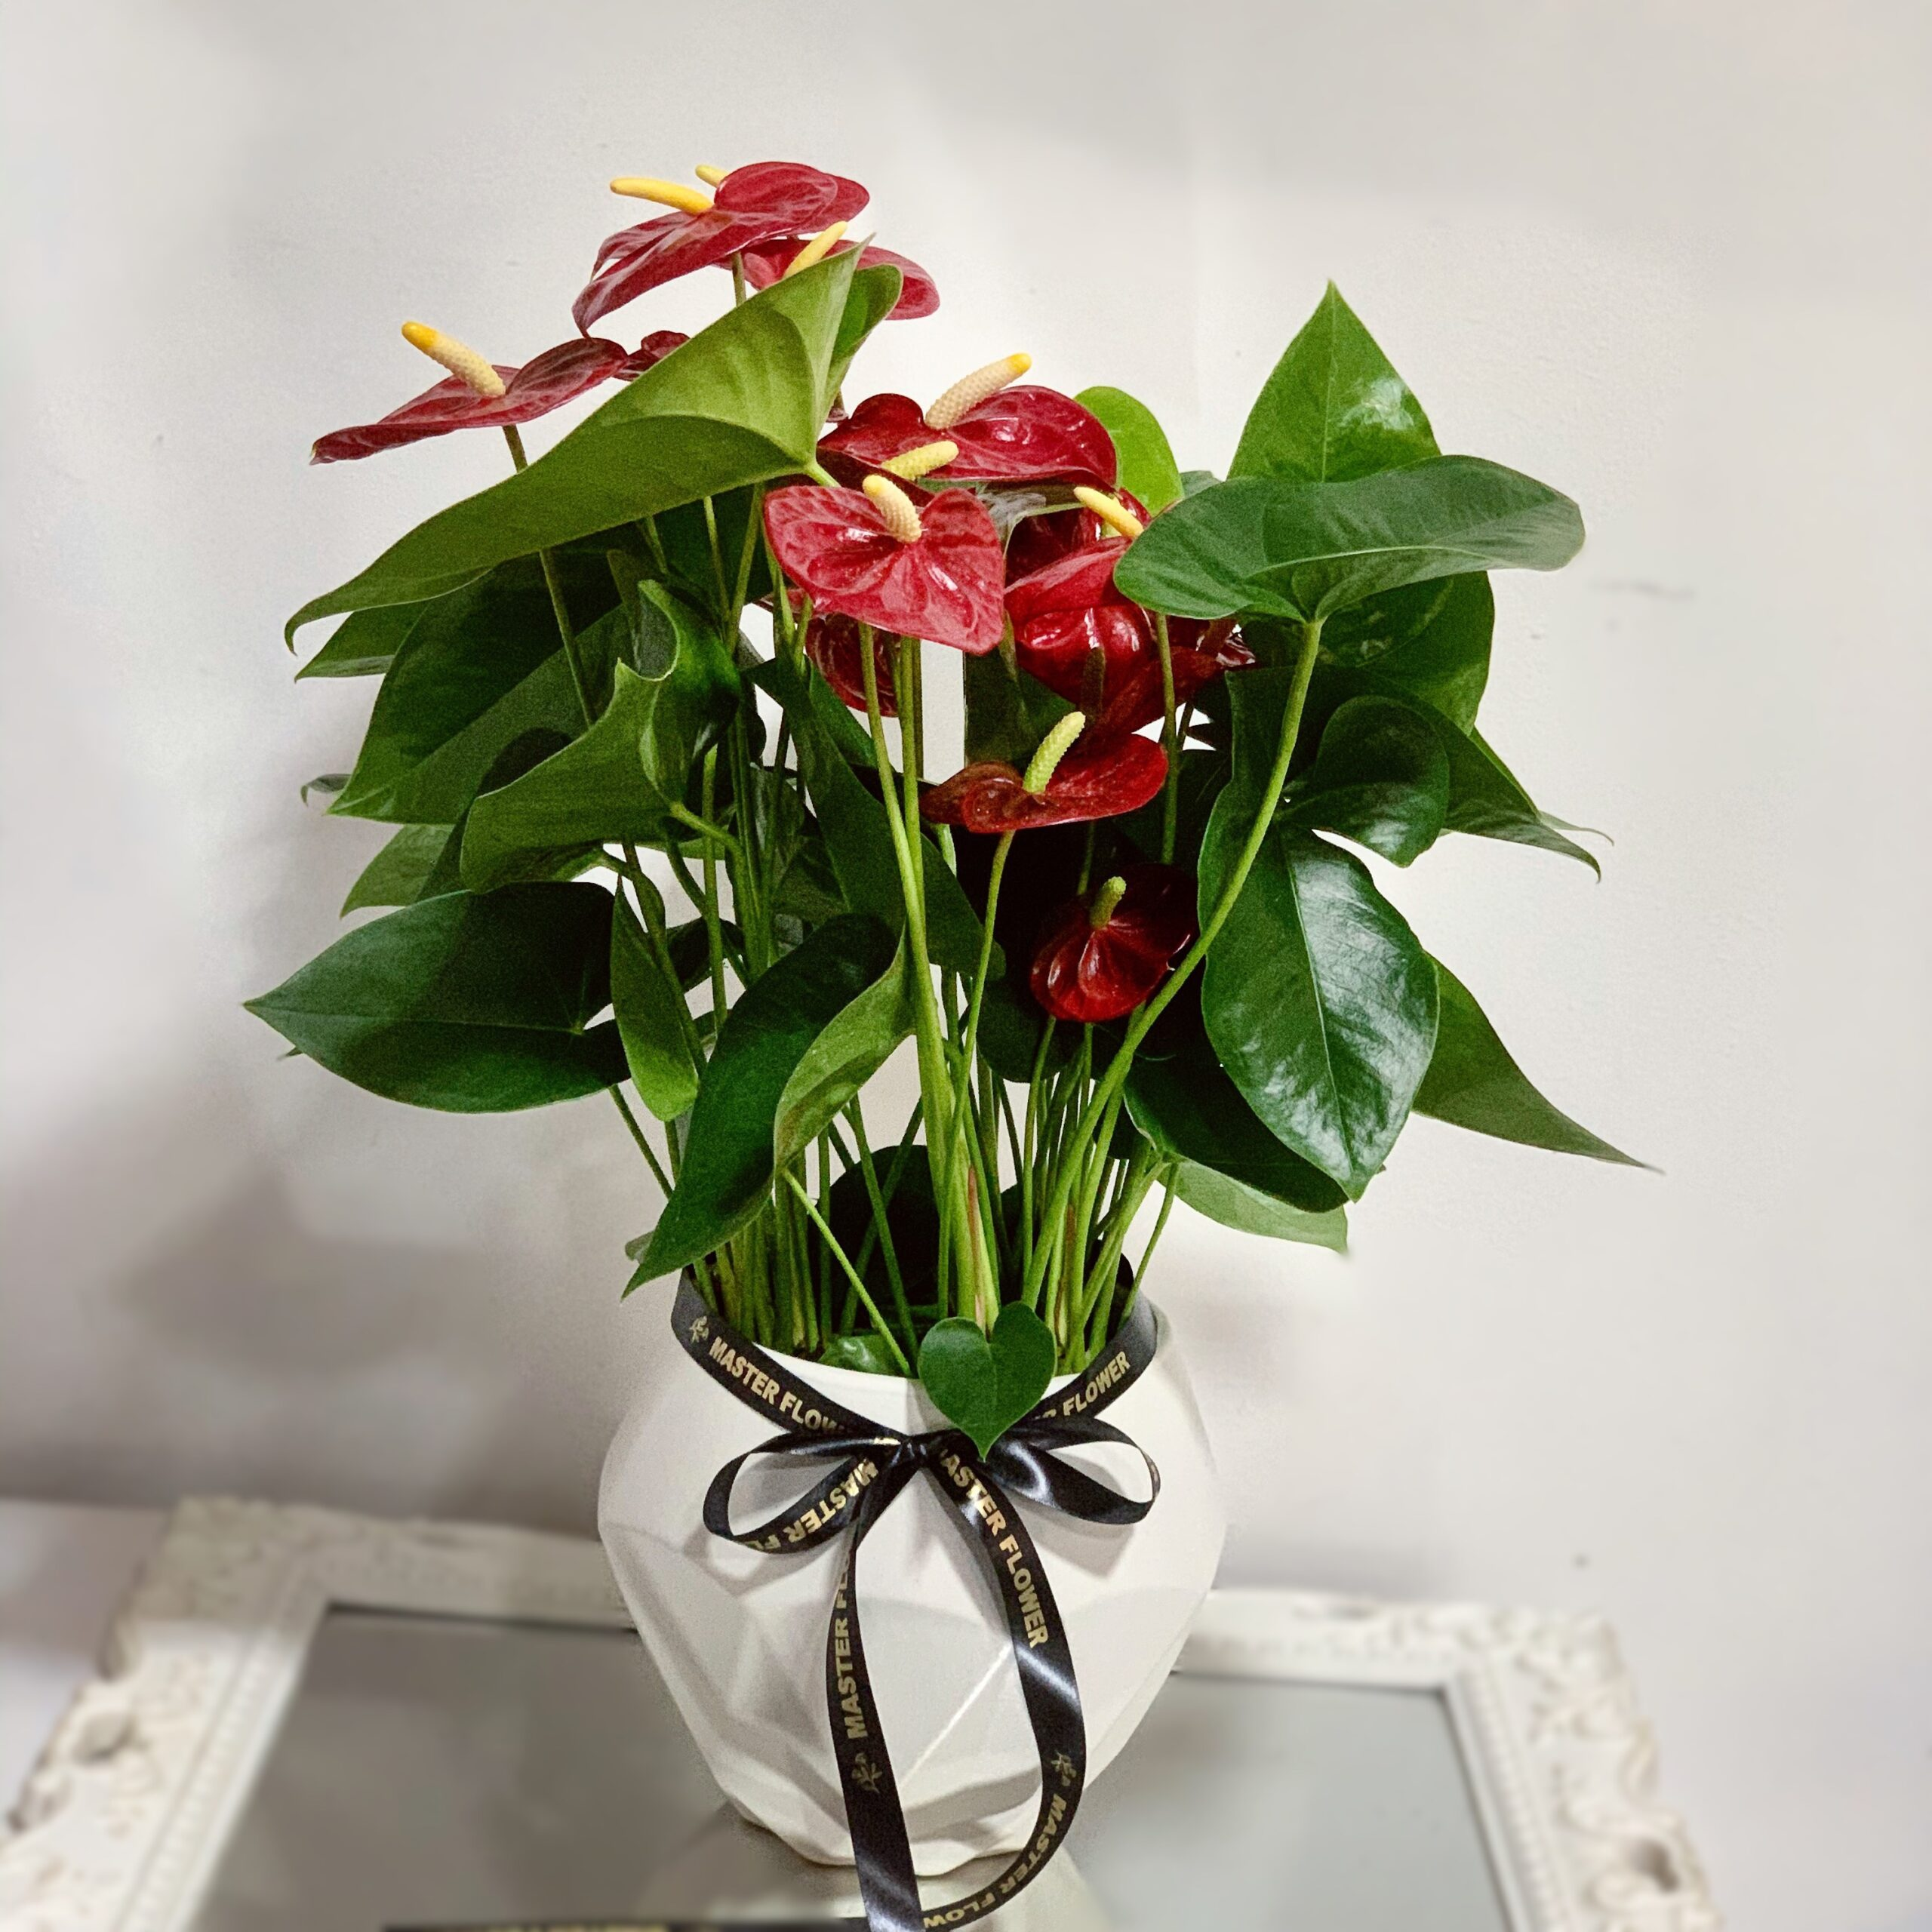 Anthurium Mini Rosu